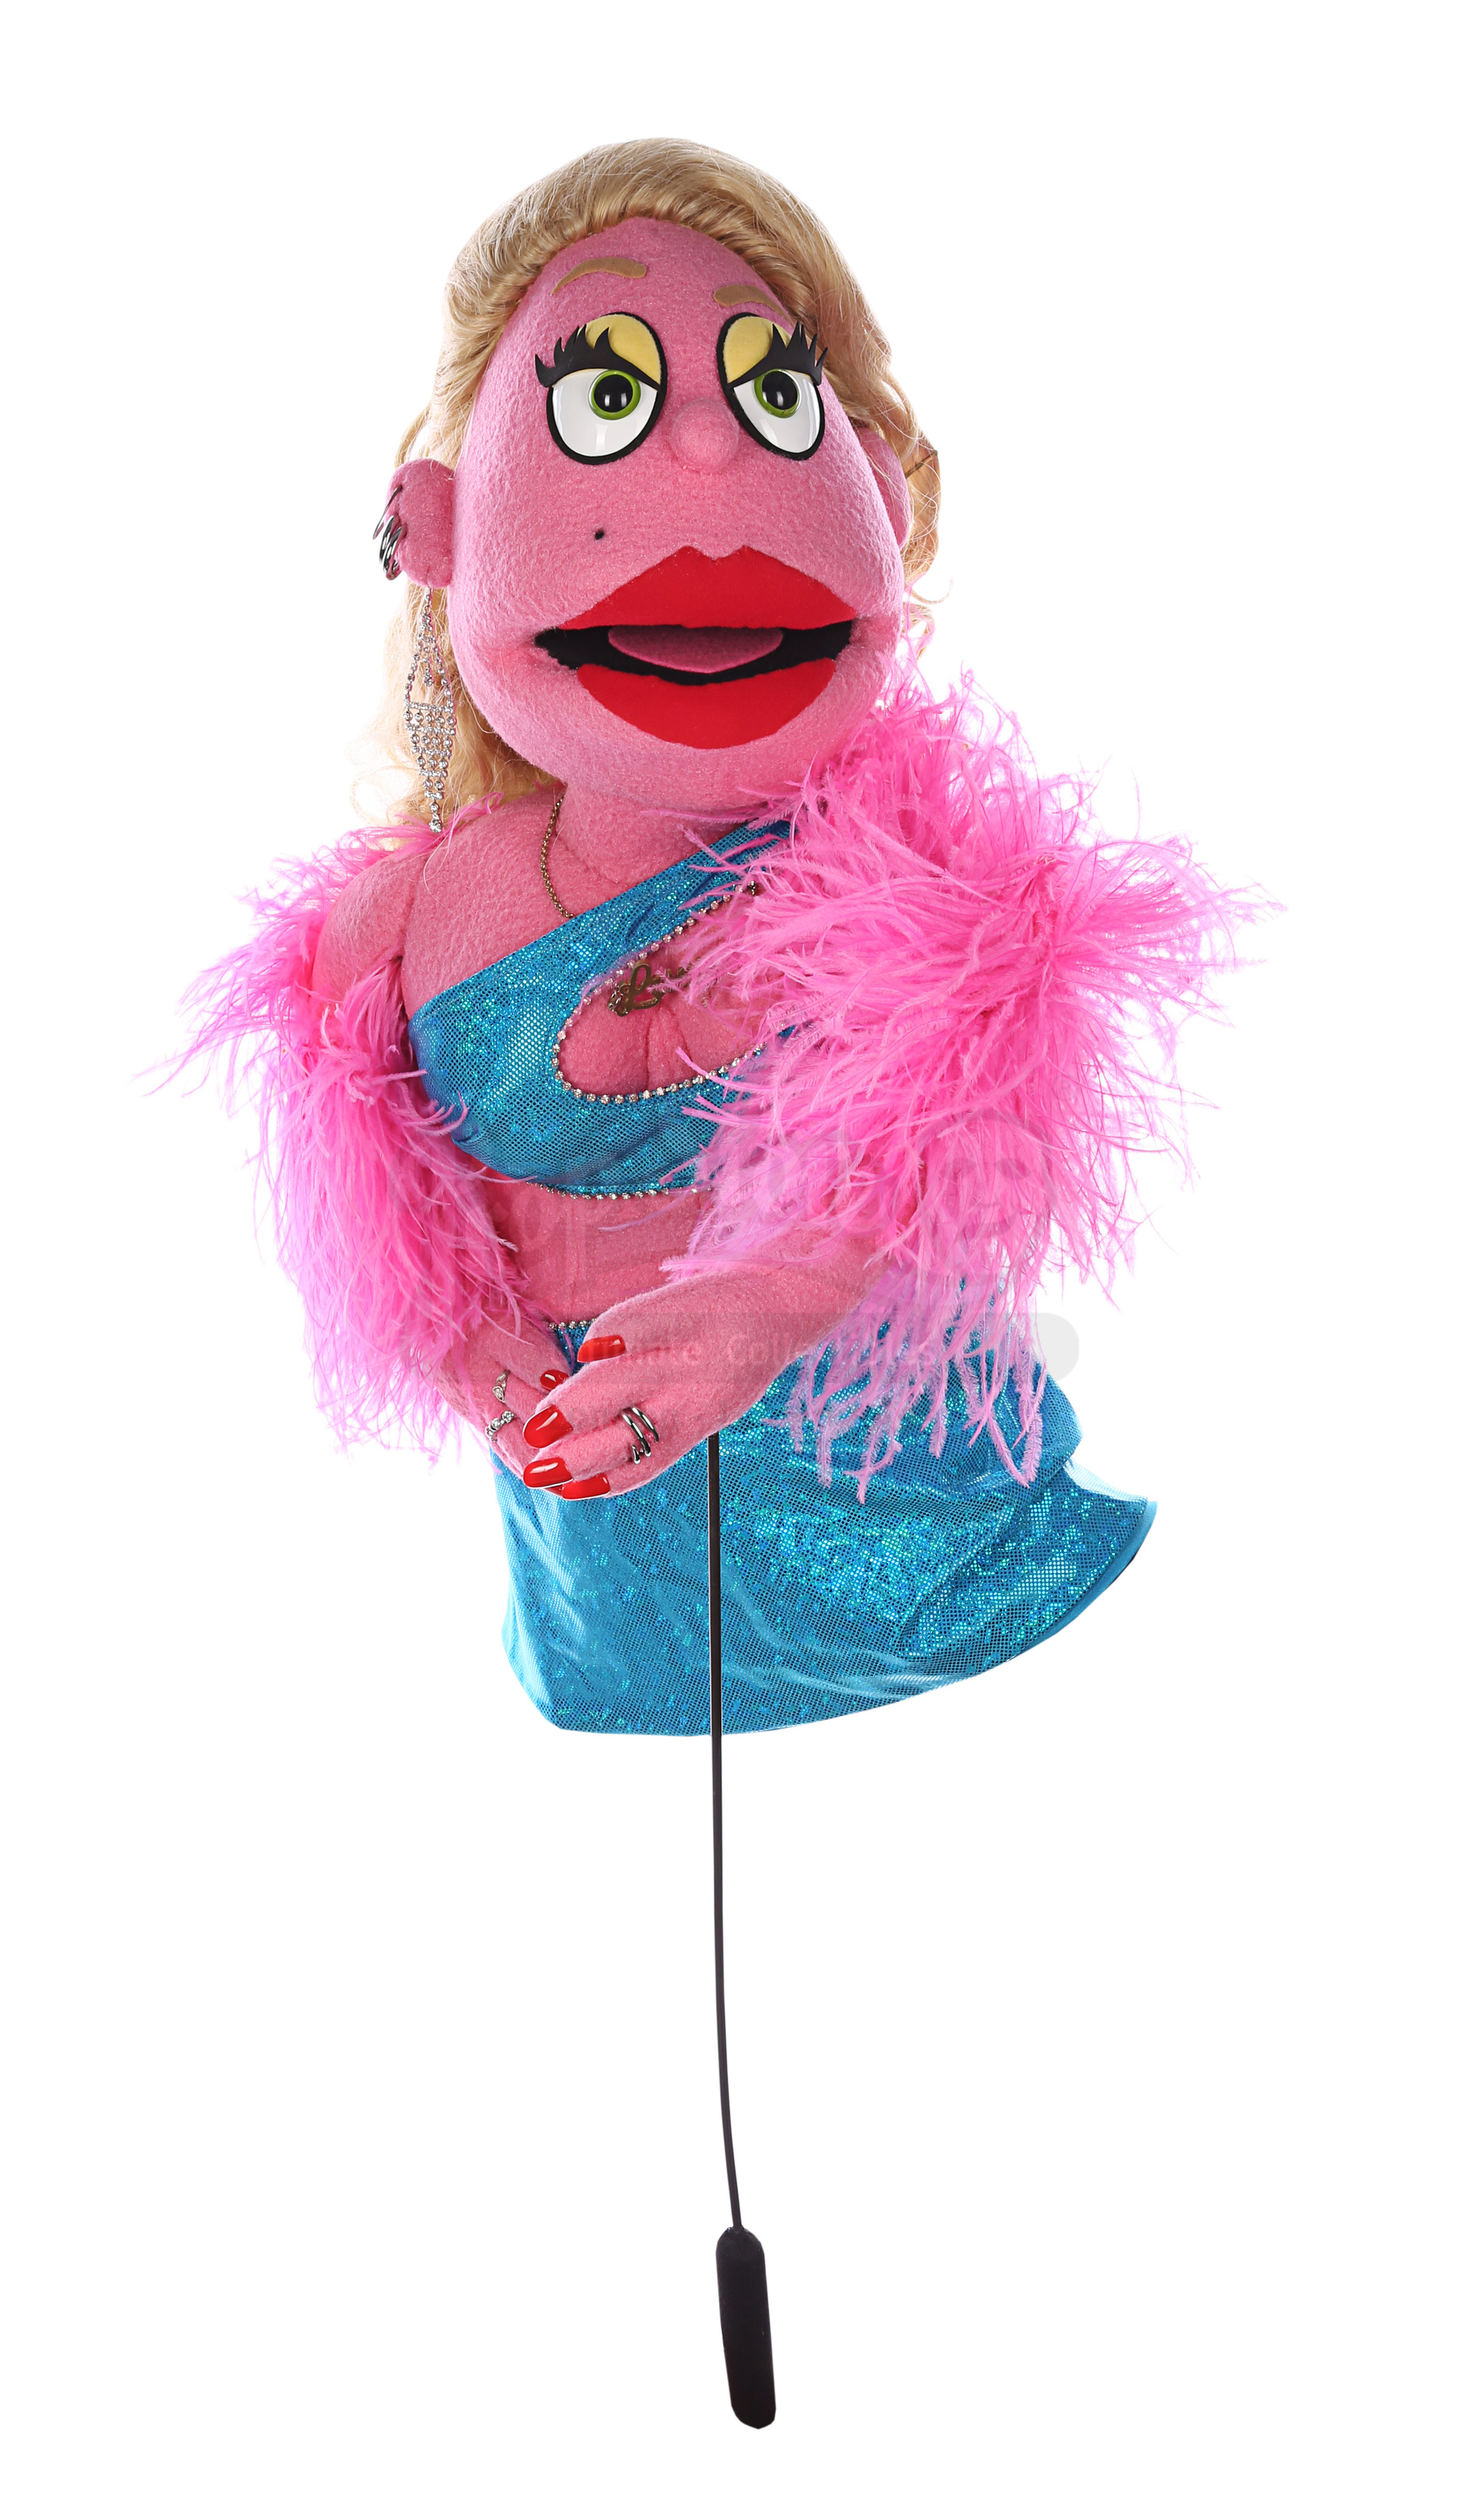 AVENUE Q (STAGE SHOW) - Lucy the Slut and Princeton Puppets - Image 6 of 9